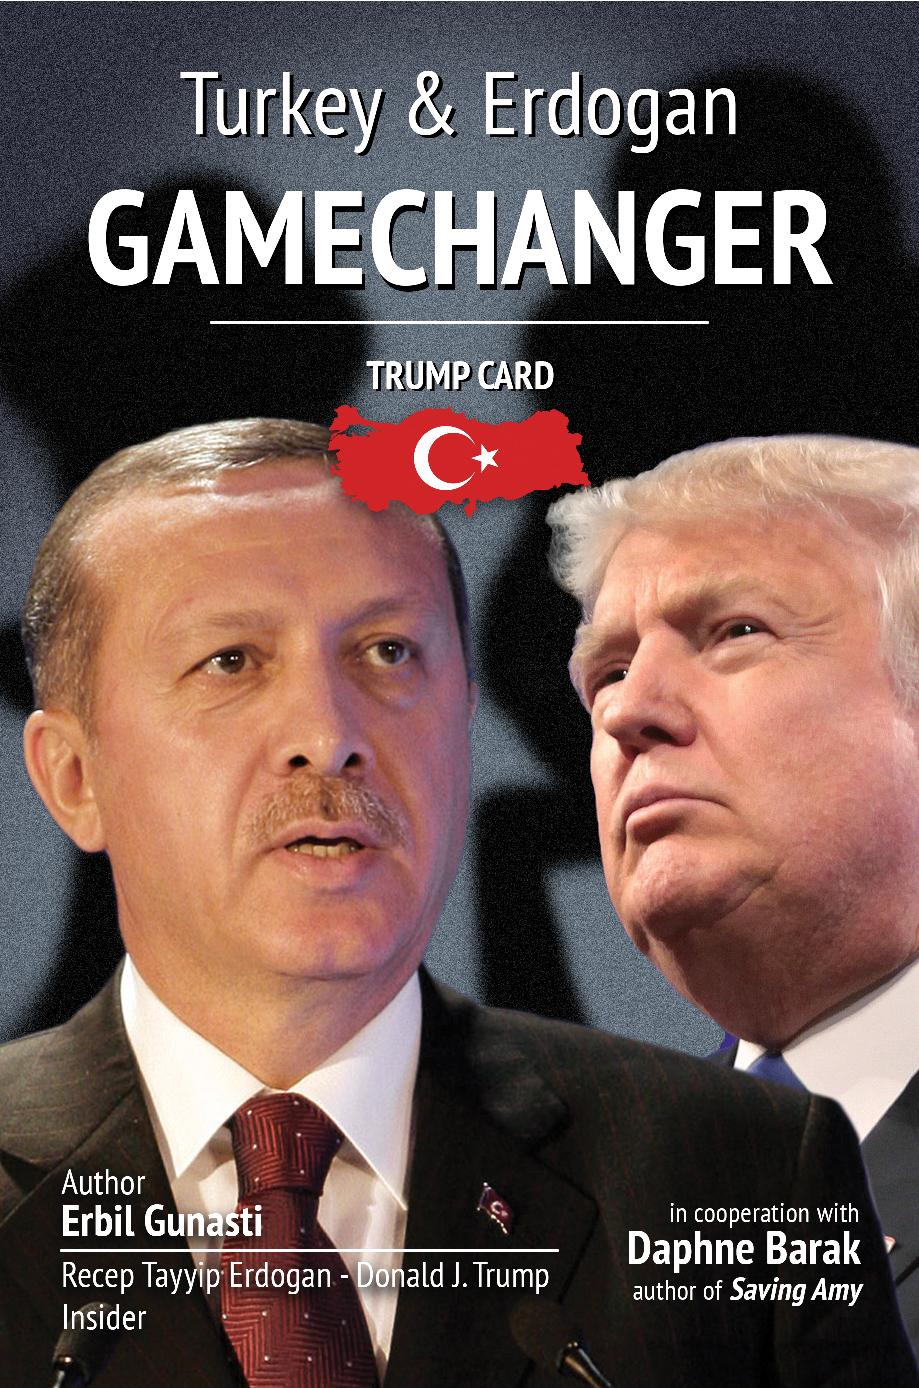 GameChanger By Erbil Gunasti